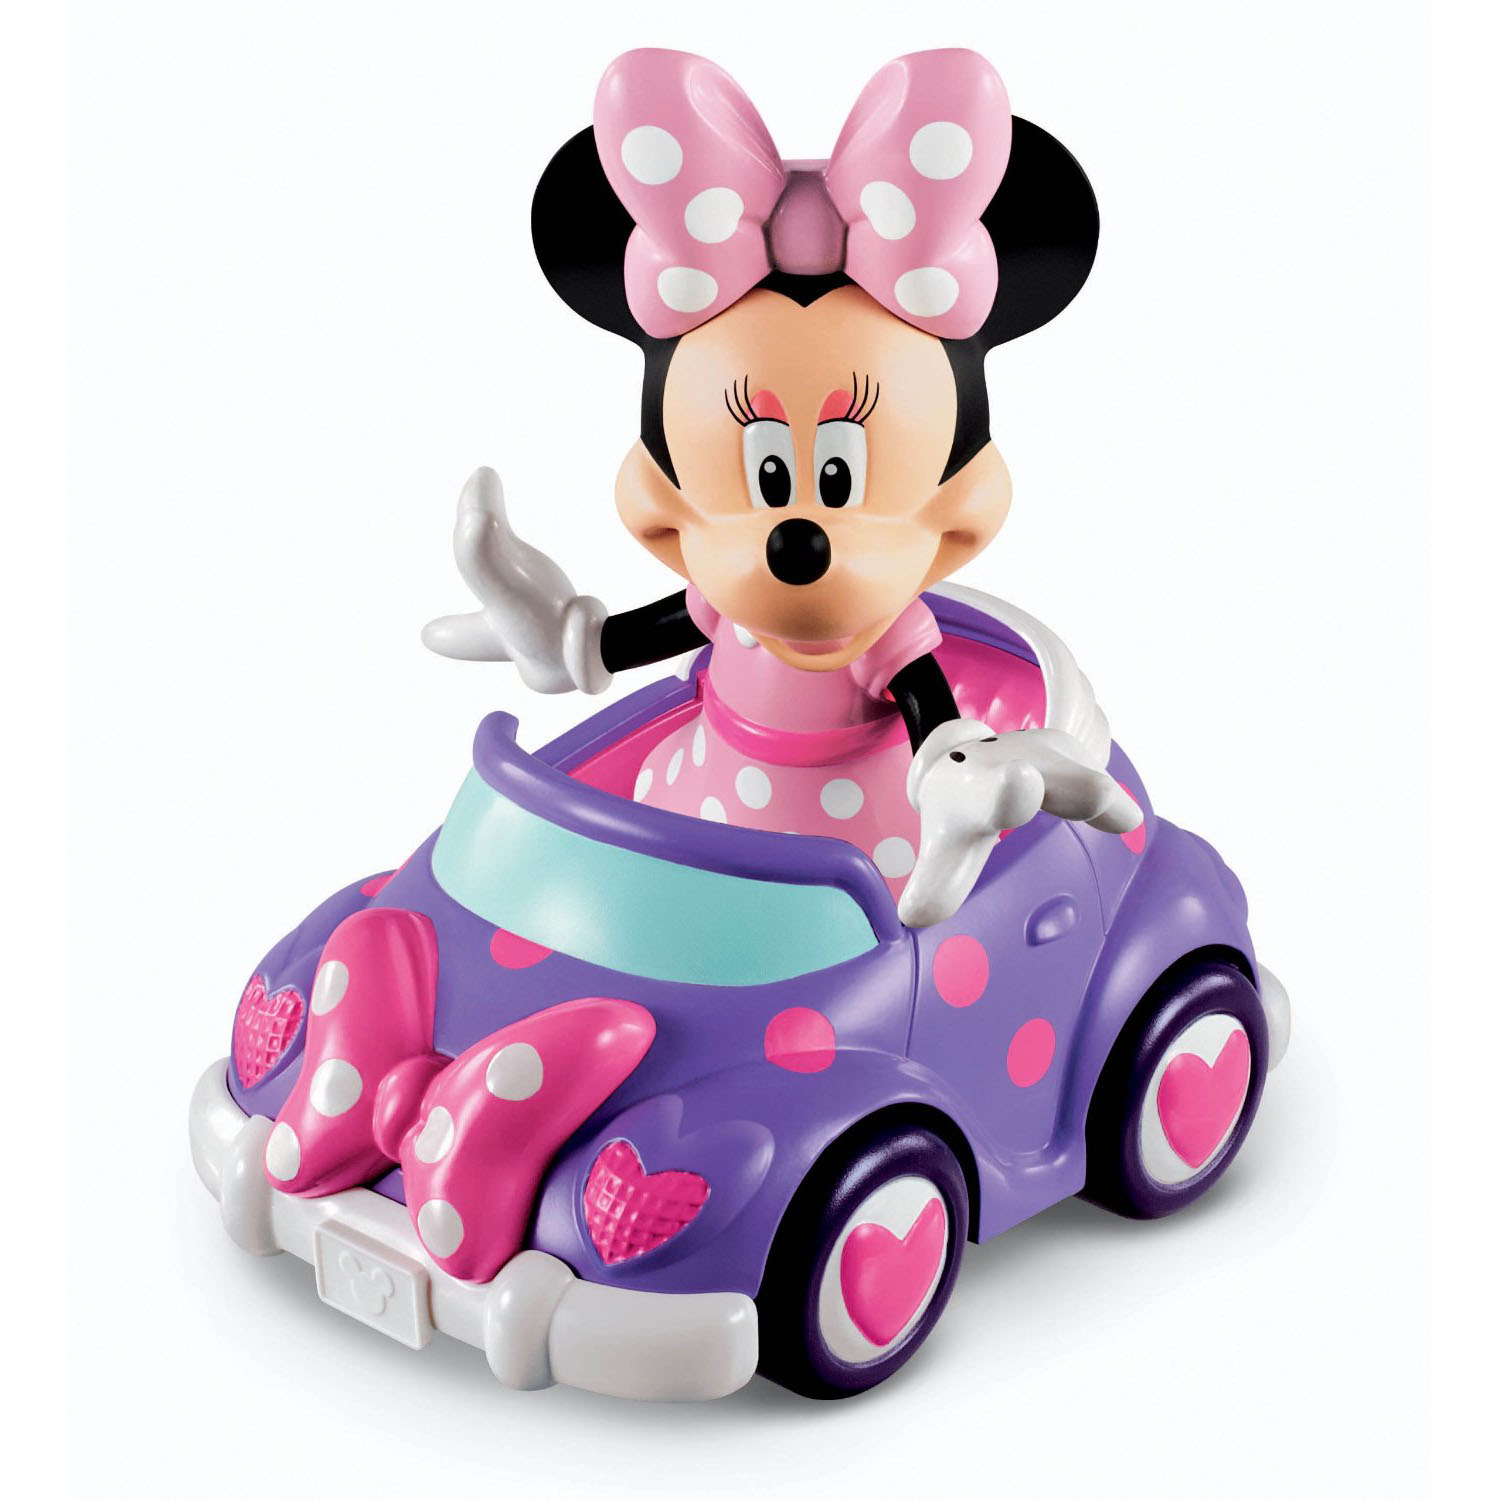 Minnie Mouse Toys : Minnie mouse toys s convertible at toystop